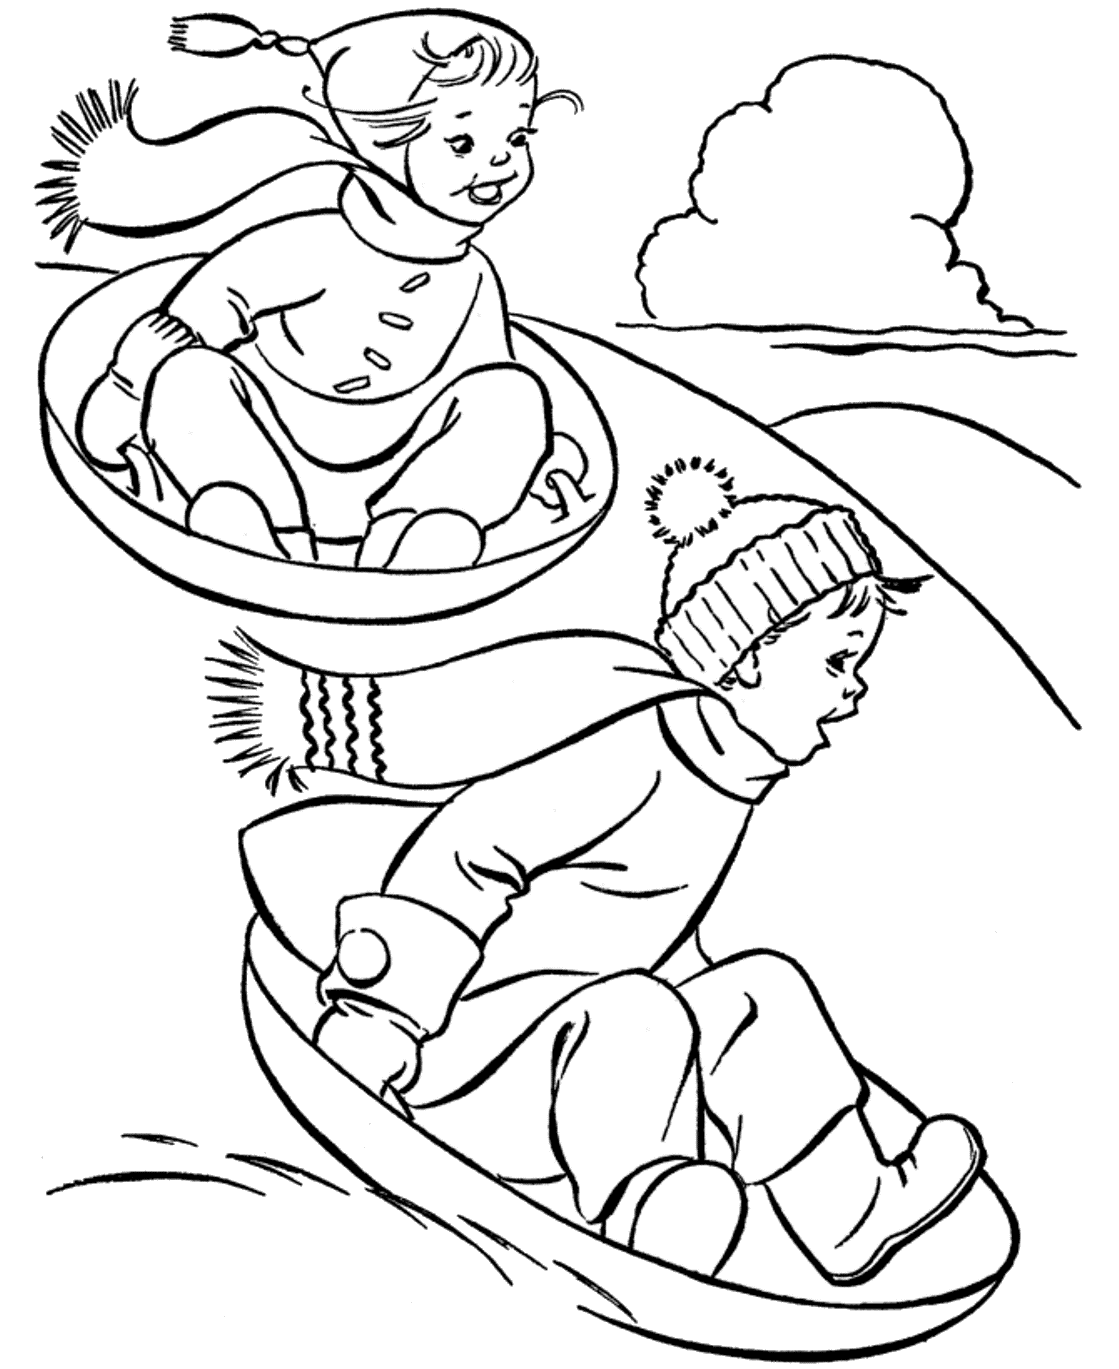 free winter coloring pages for preschoolers - sports photograph coloring pages kids winter sports